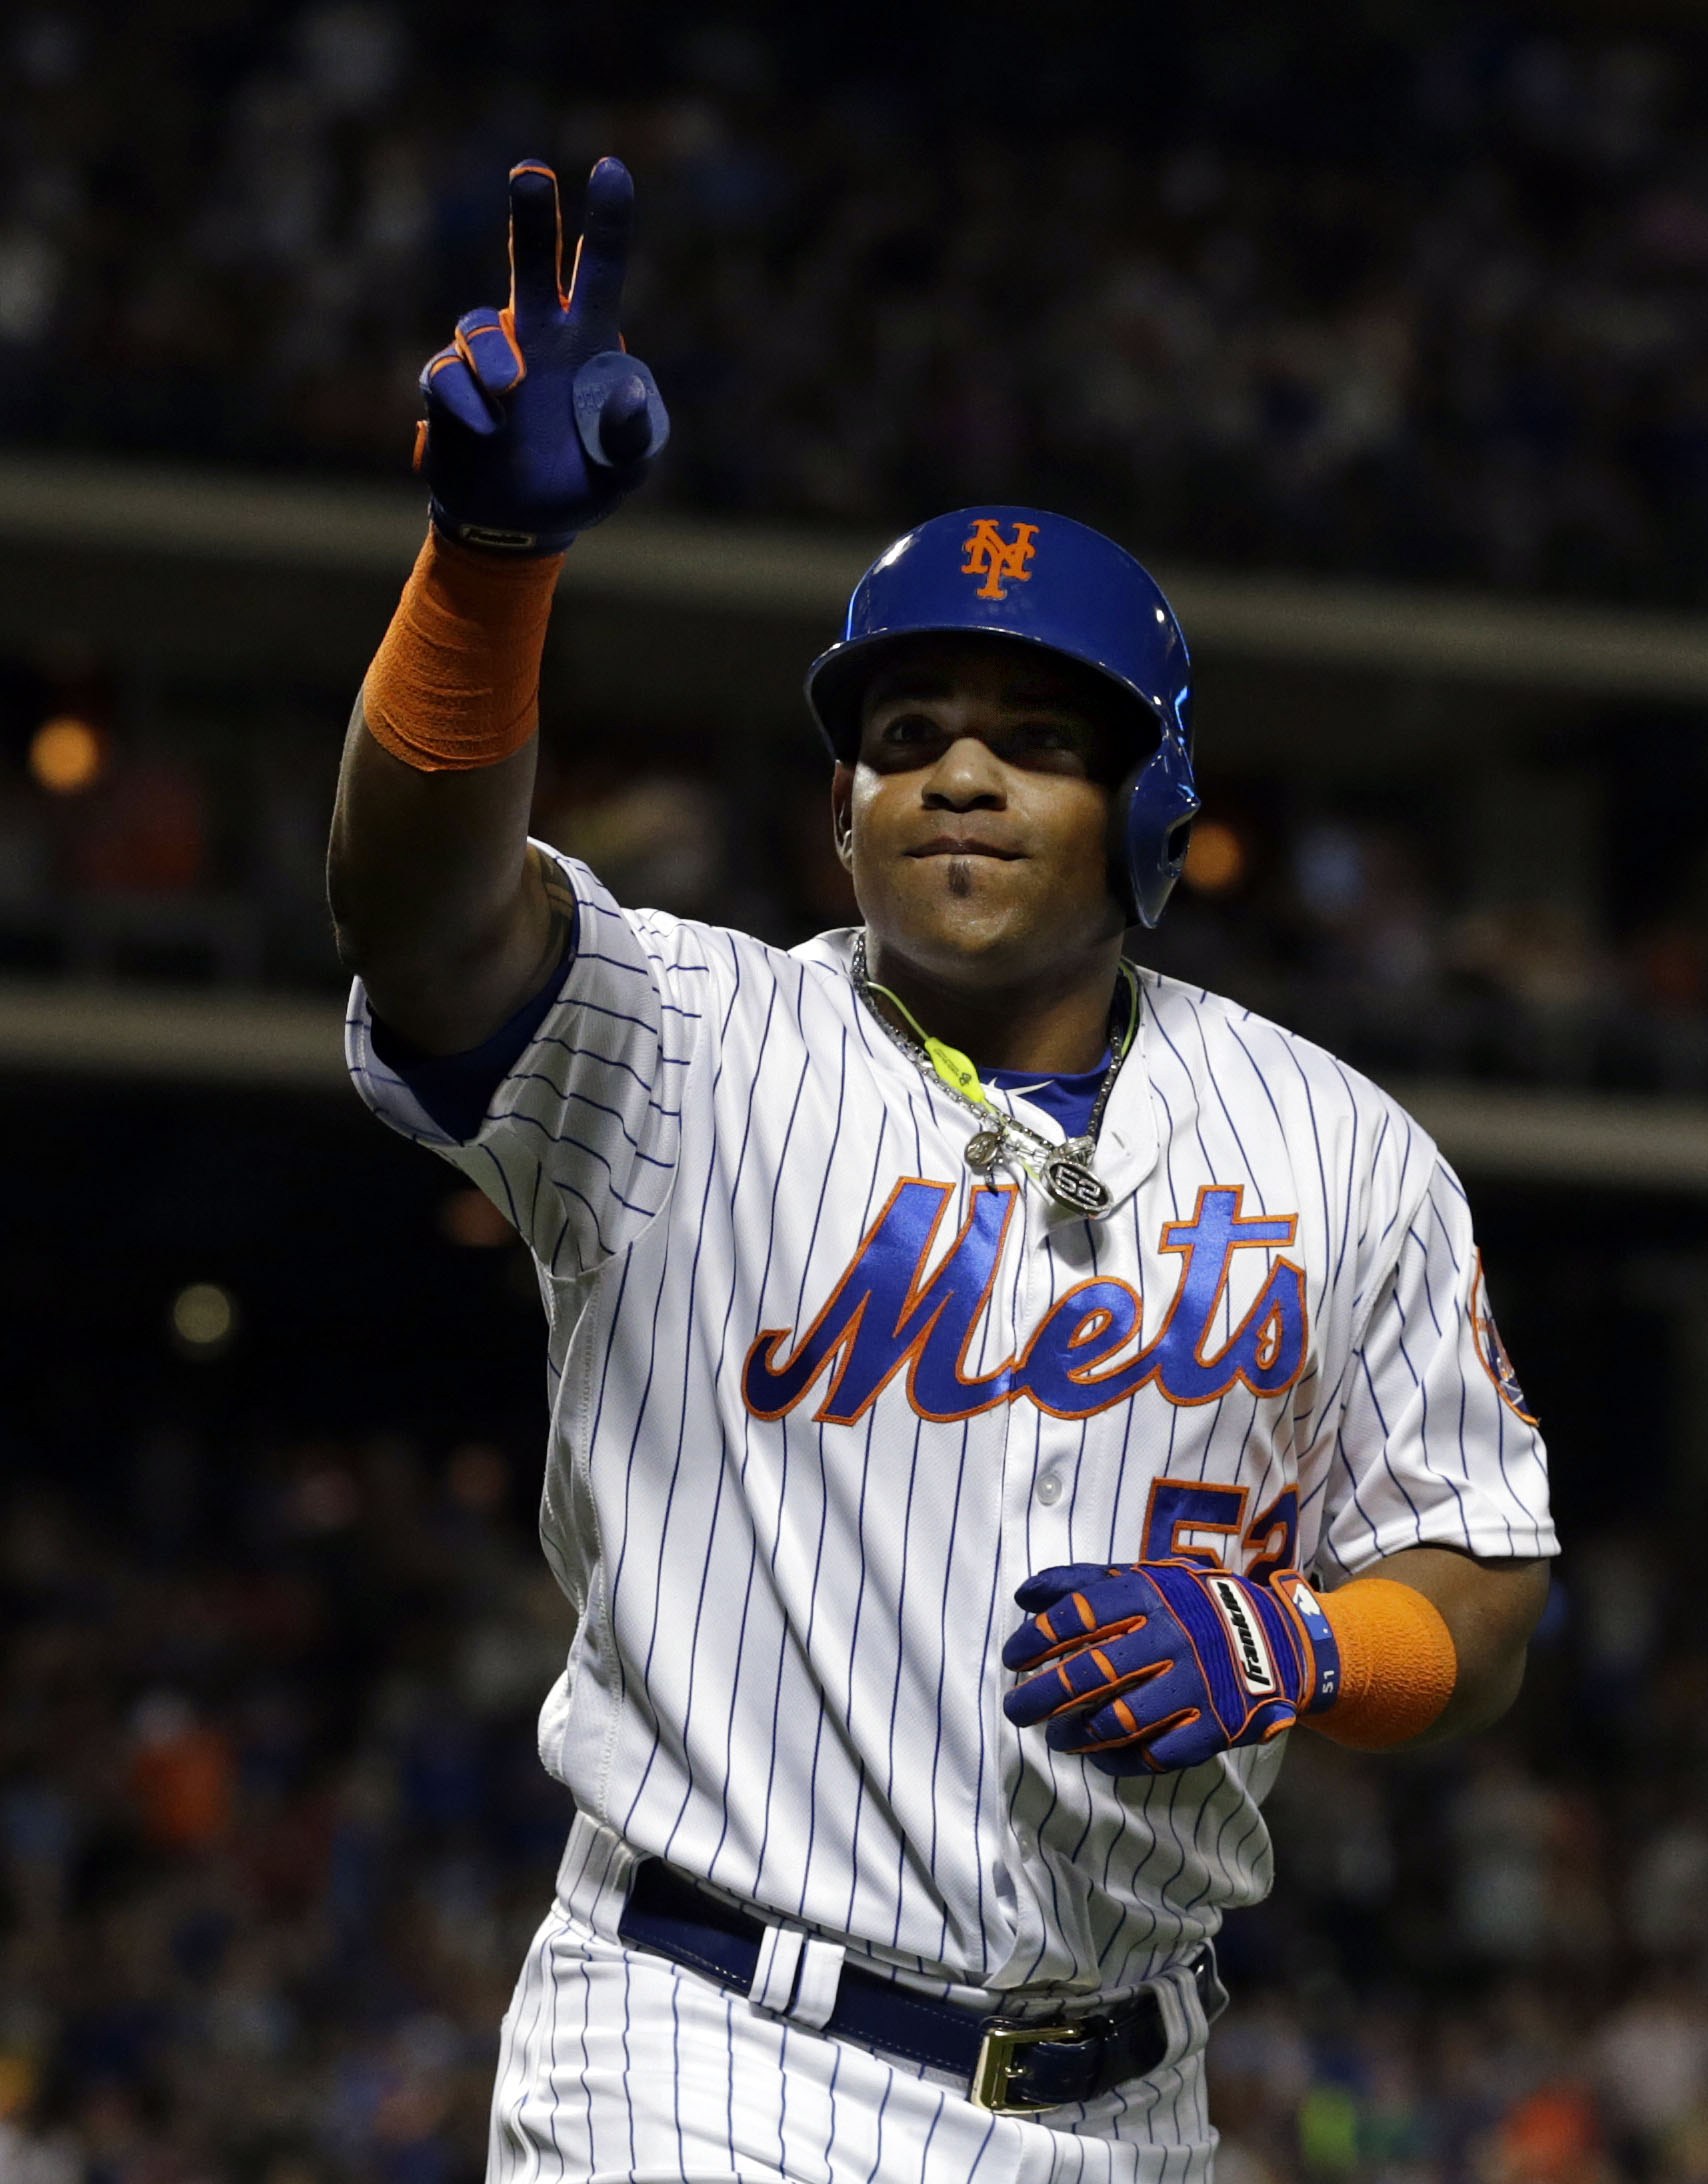 dac6459ed Shortly after the Fall Classic between the Cubs and Indians concluded,  Cespedes unsurprisingly voided what was left of his contract in order to  take another ...